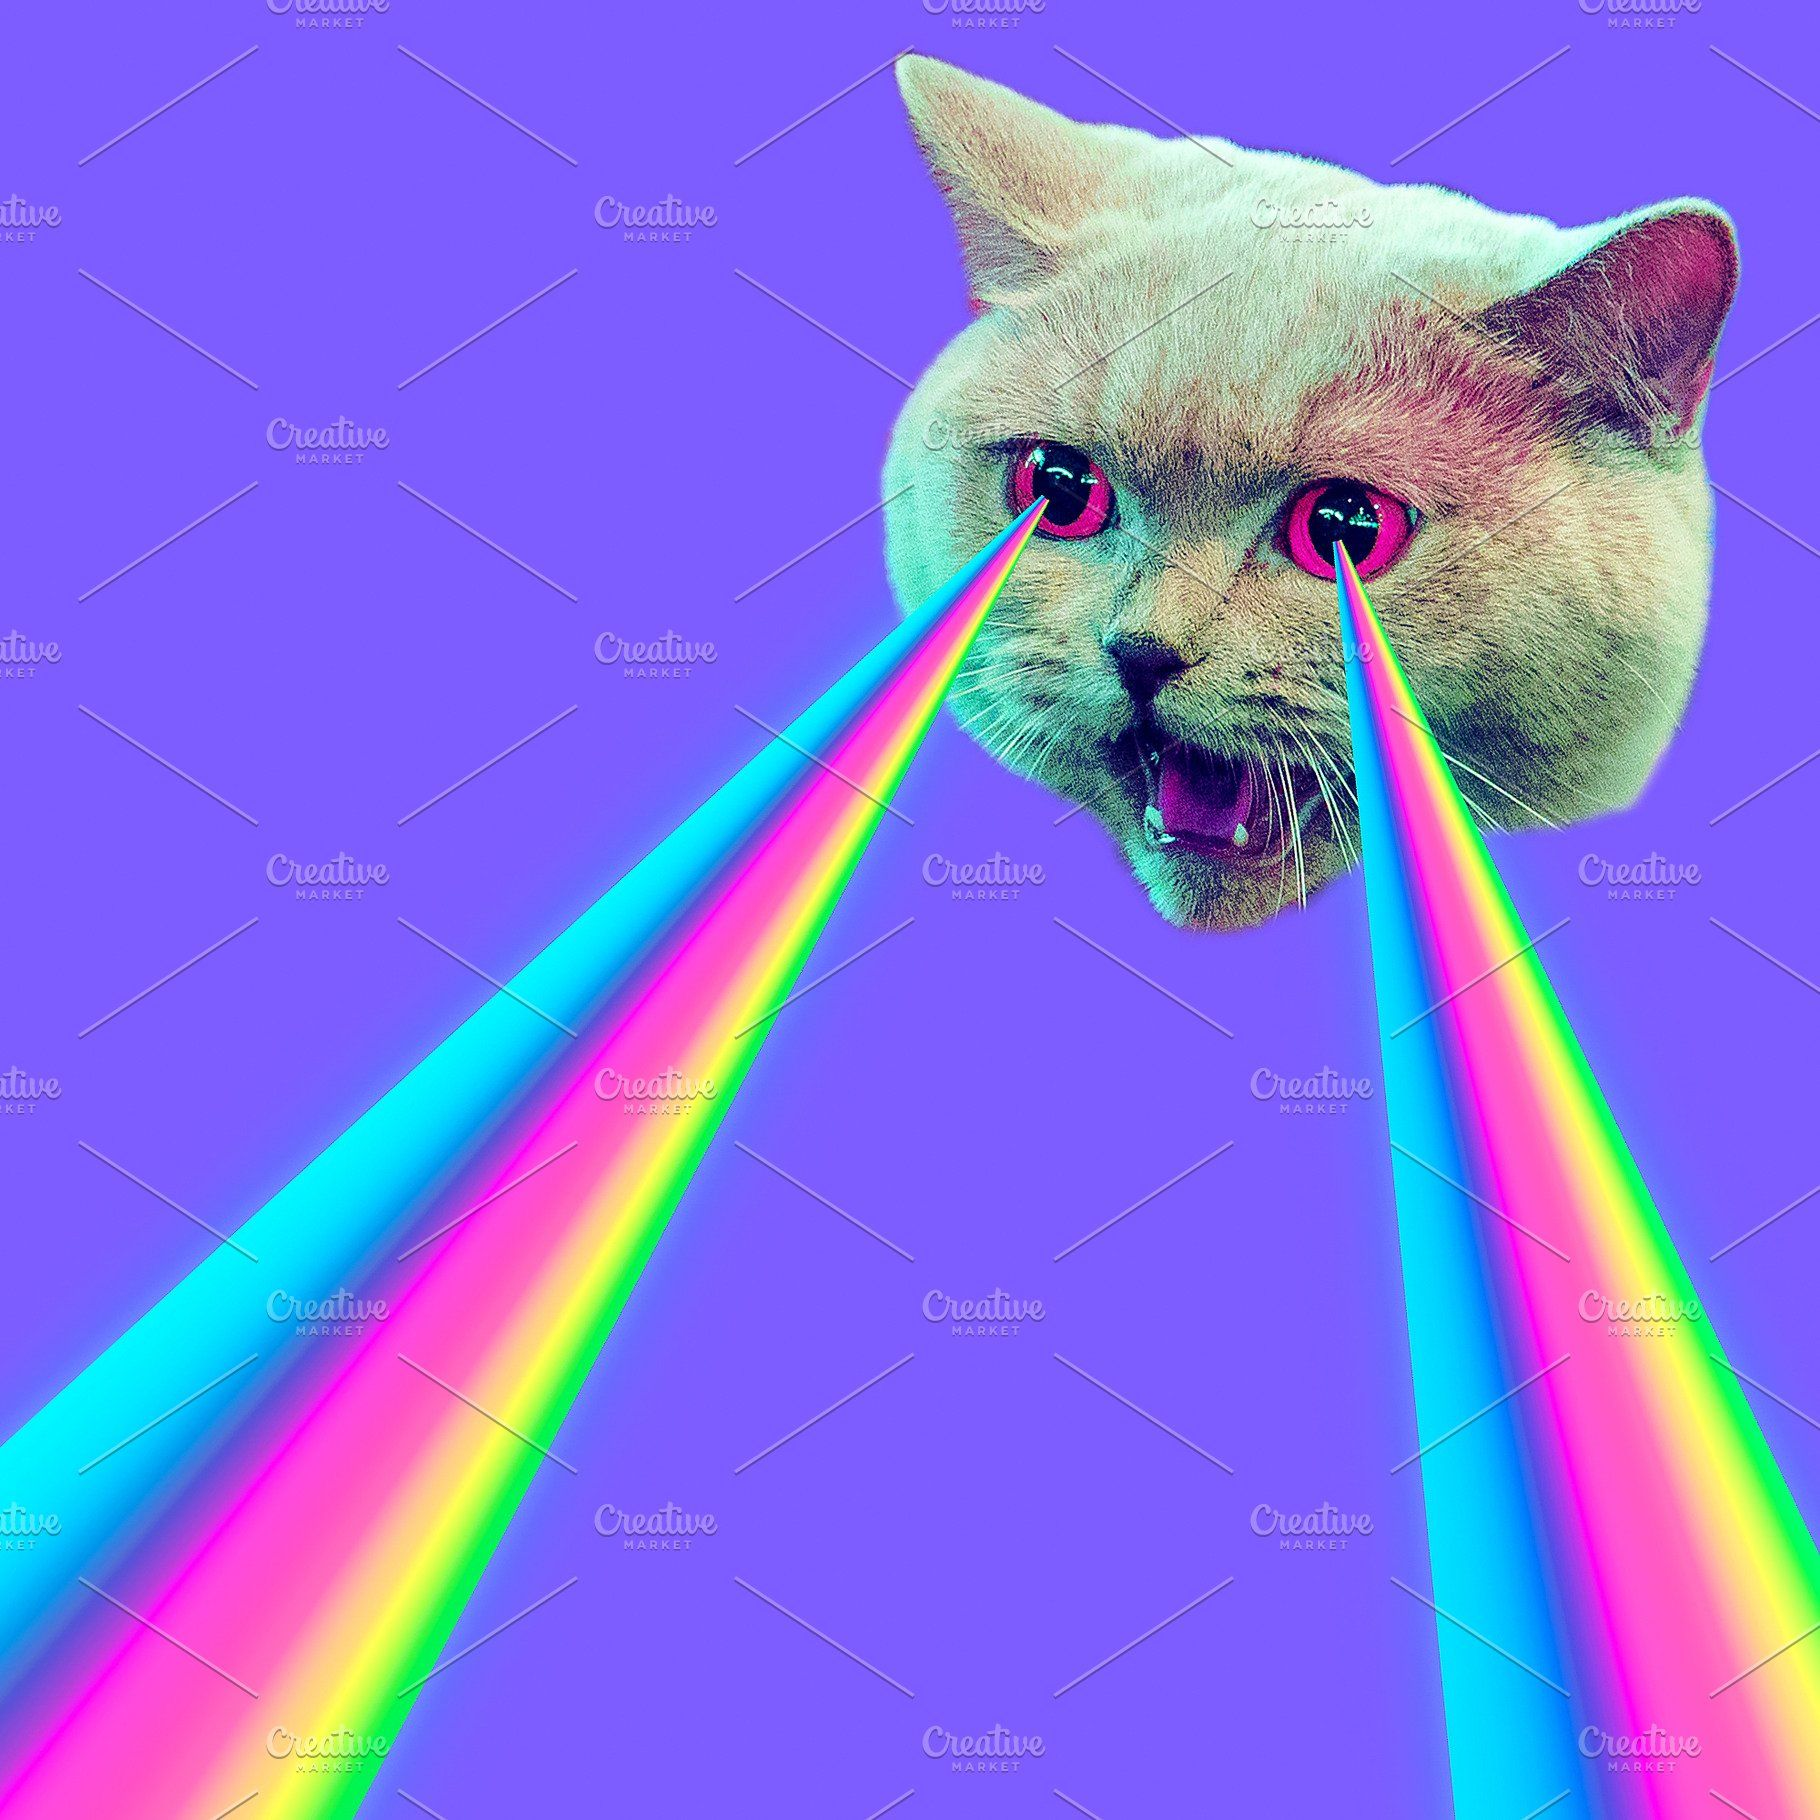 Evil Cat with rainbow lasers from ey Злые кошки